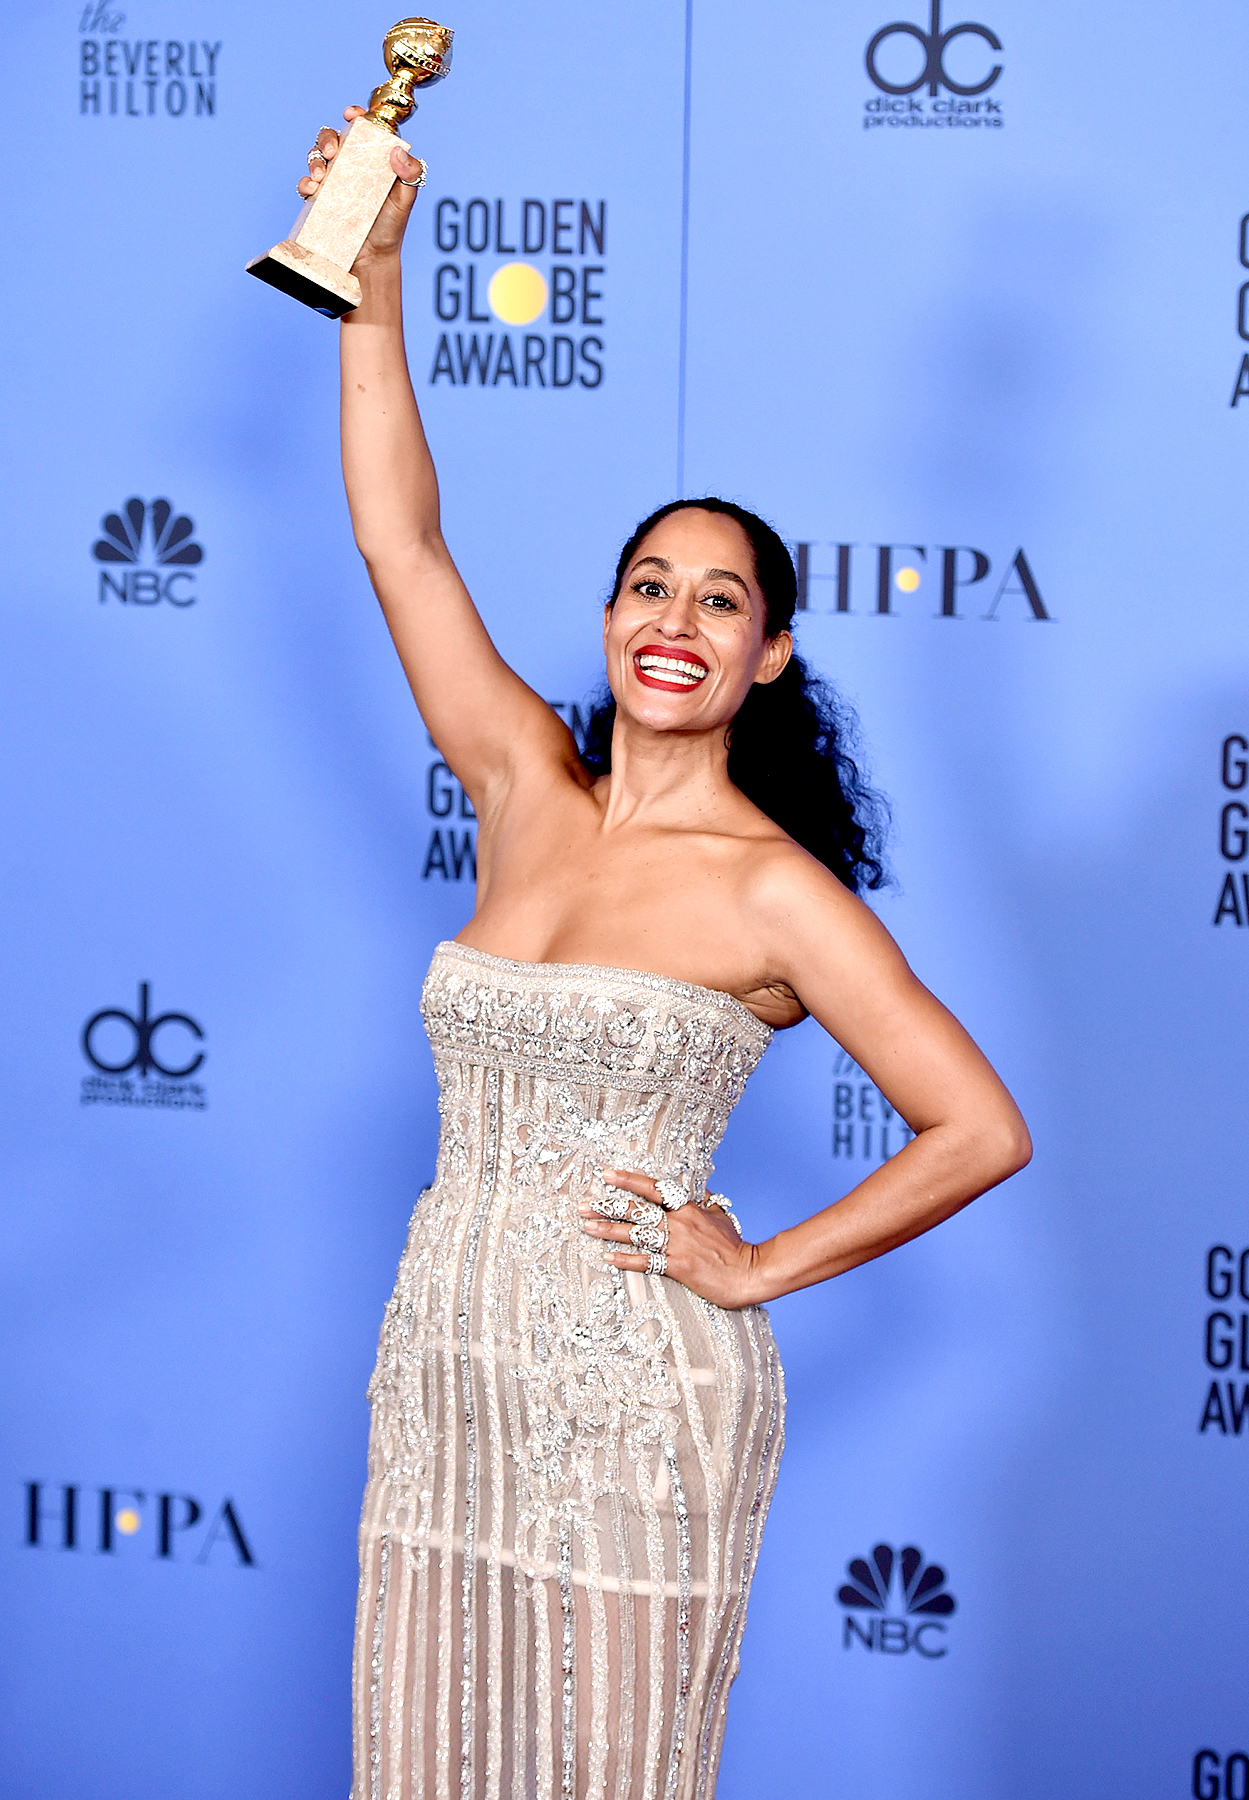 Tracee Ellis Ross, winner of Best Performance in a Television Series - Musical or Comedy for 'Black-ish,' poses in the press room during the 74th Annual Golden Globe Awards at The Beverly Hilton Hotel on January 8, 2017 in Beverly Hills, California.